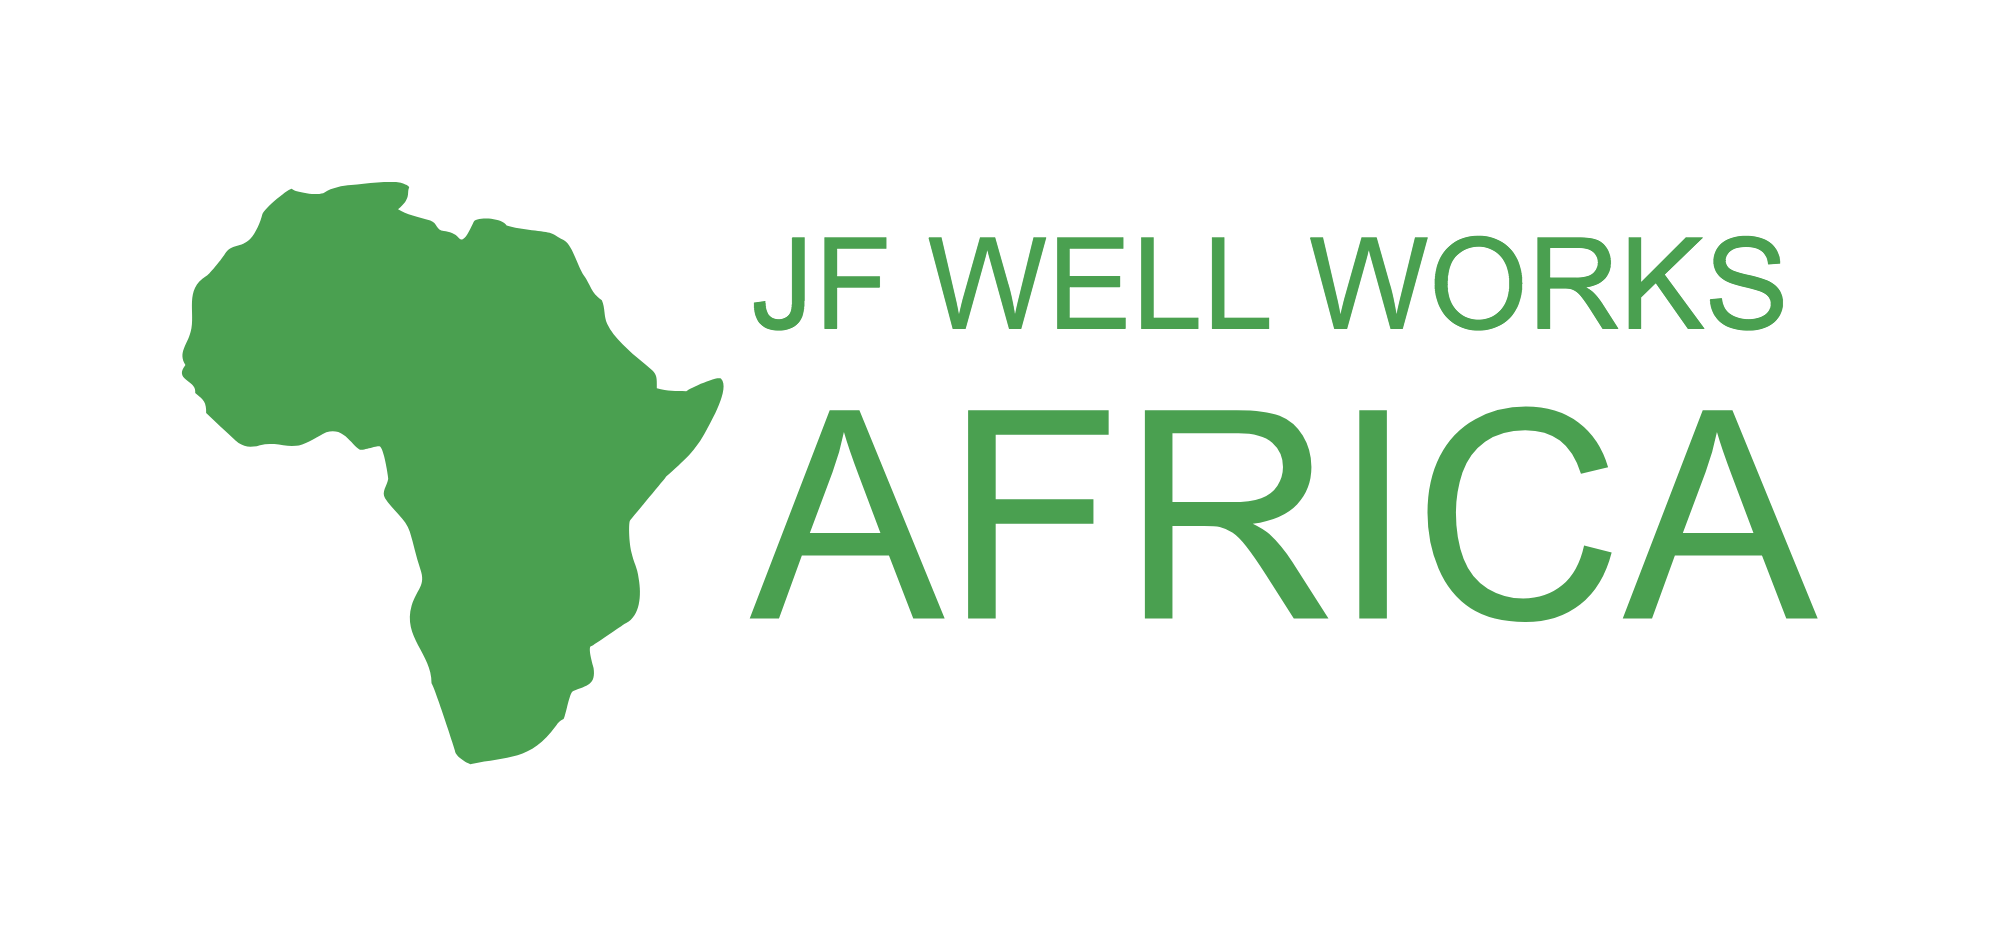 AFRICA-logo.png